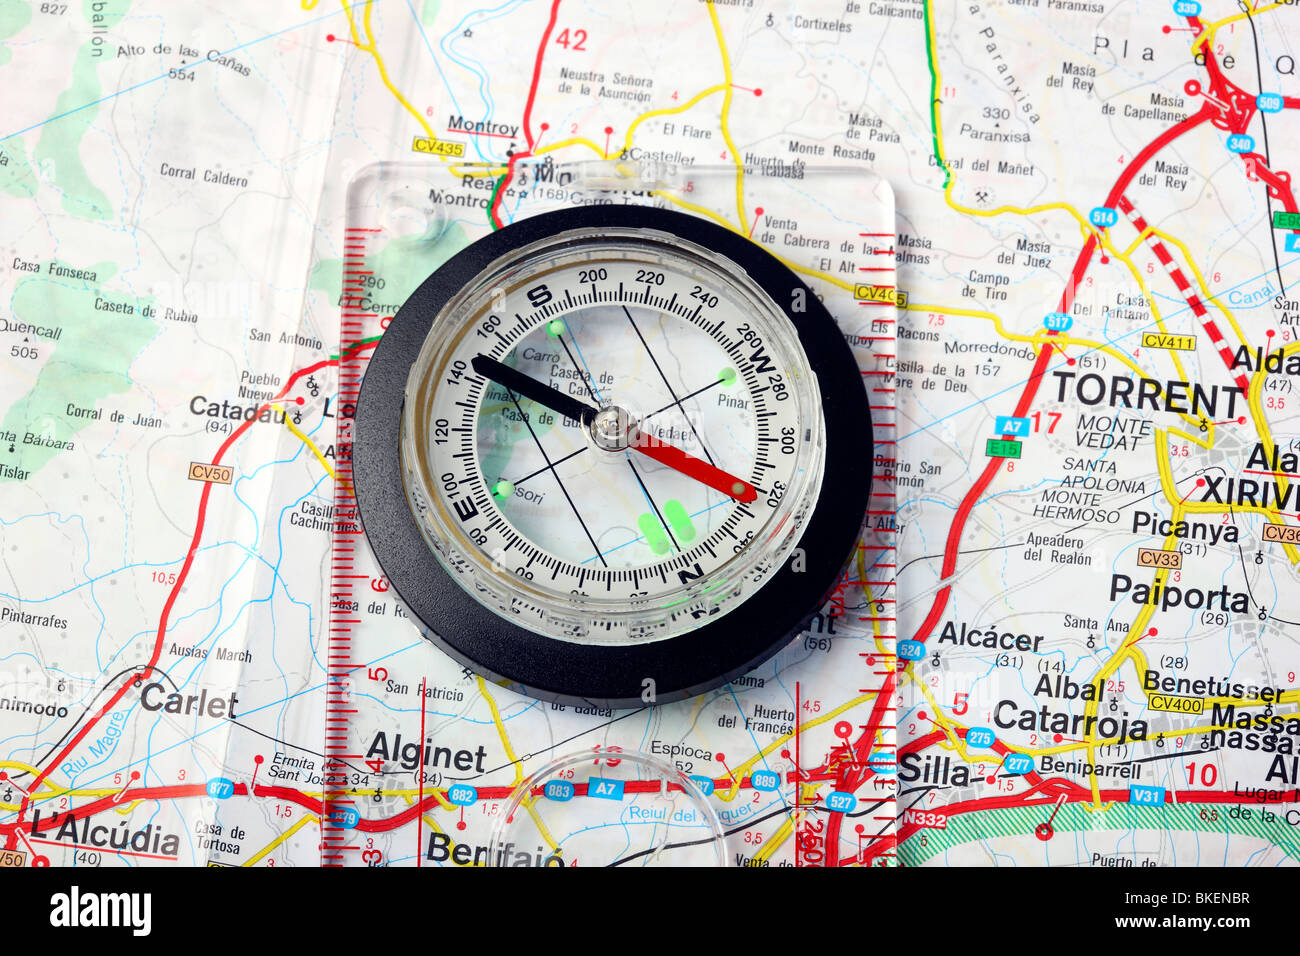 compass, lunatic compass, you can read over the cross hairs and the casing over the direction of march. - Stock Image